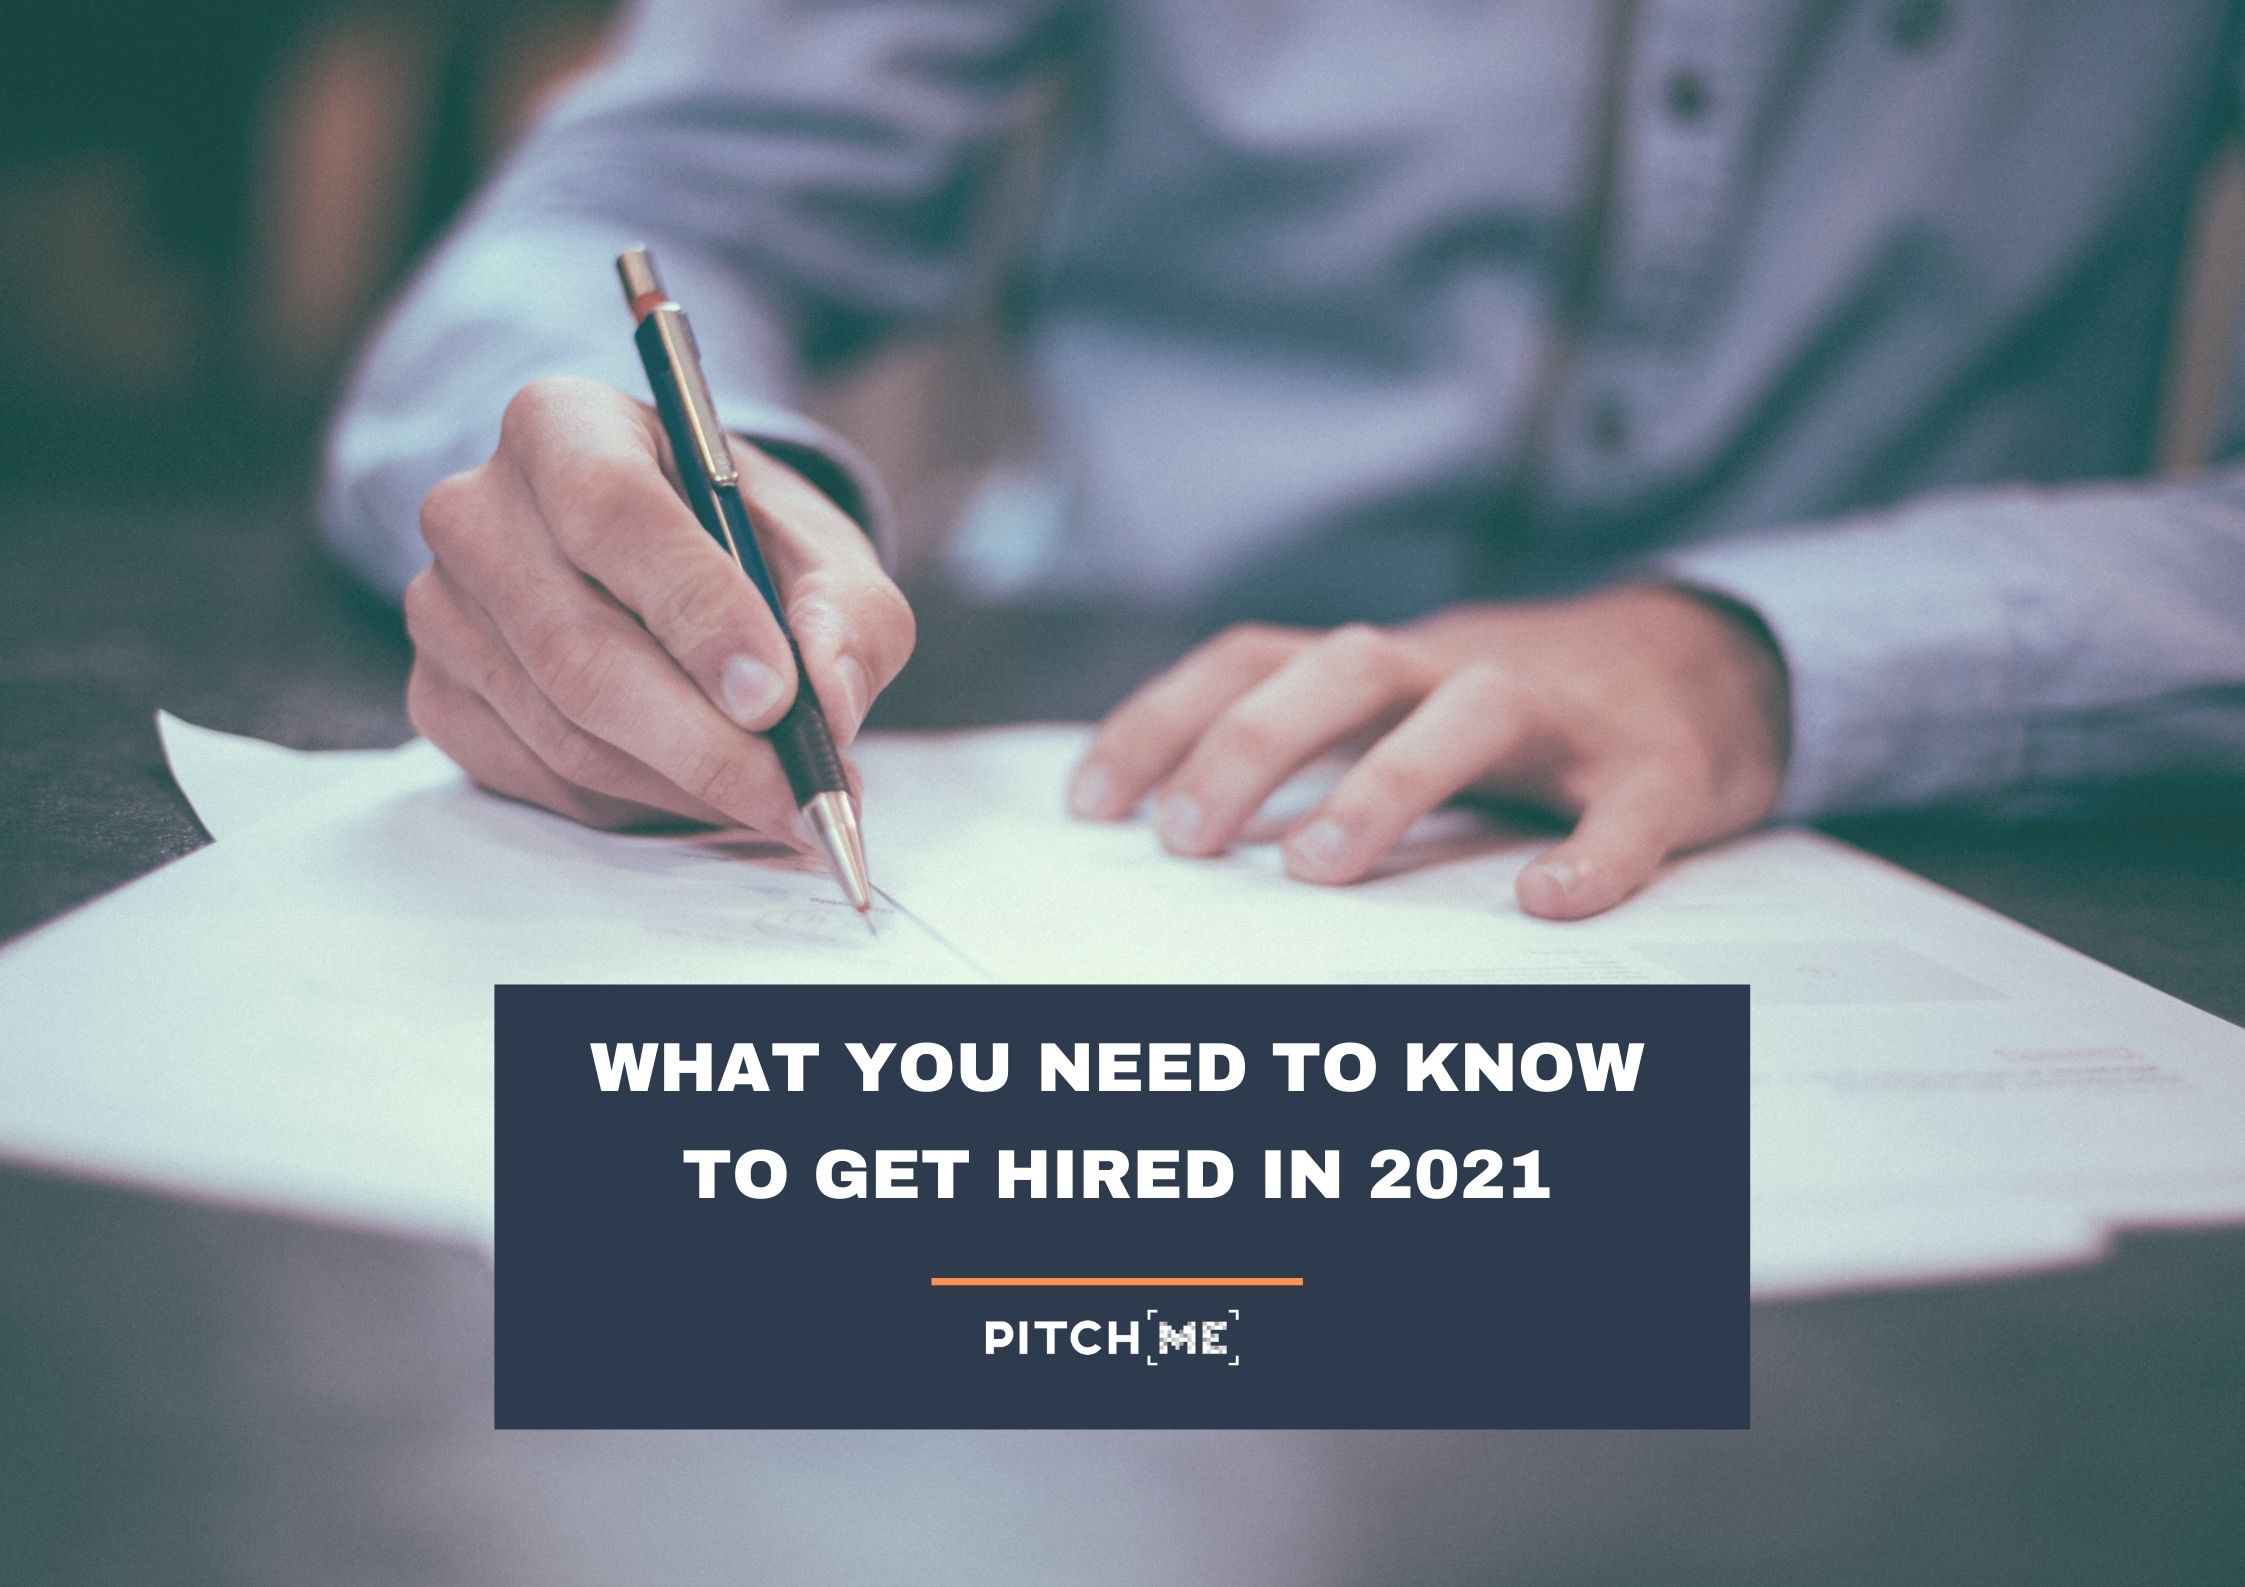 Get Hired in 2021